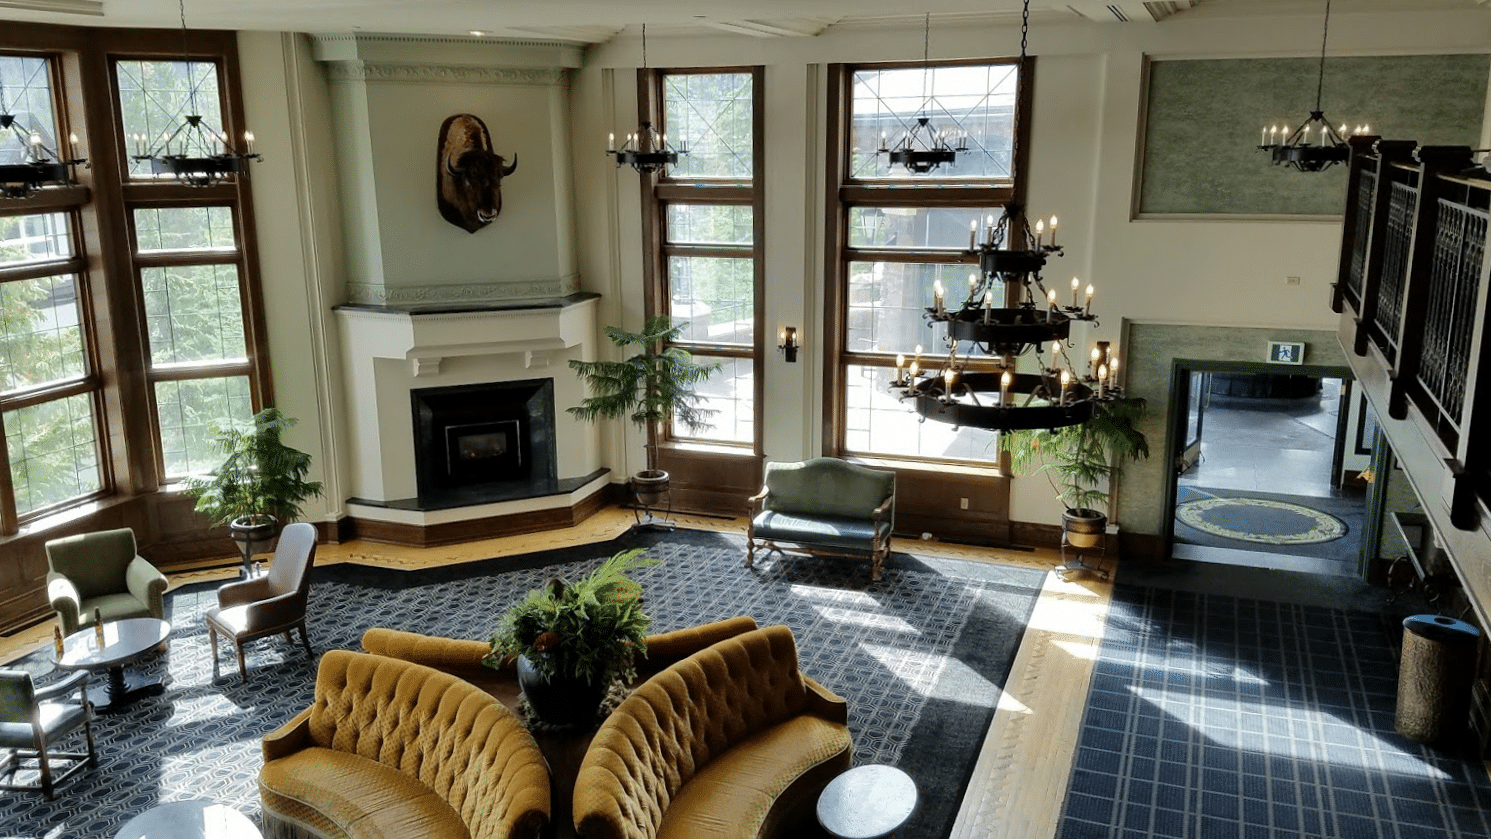 A parlor with Buffalo head over the fireplace at the Banff Springs Hotel